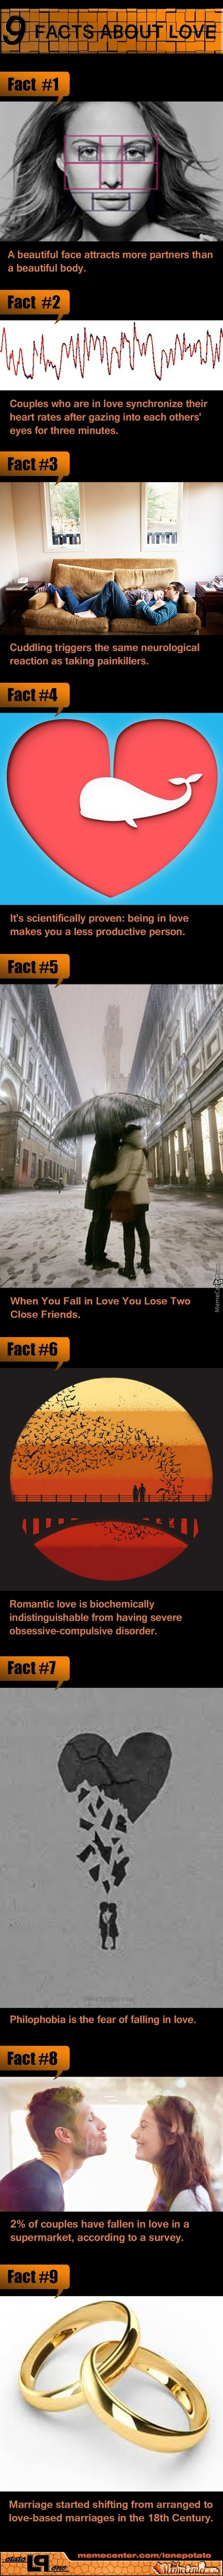 Did You Know #4